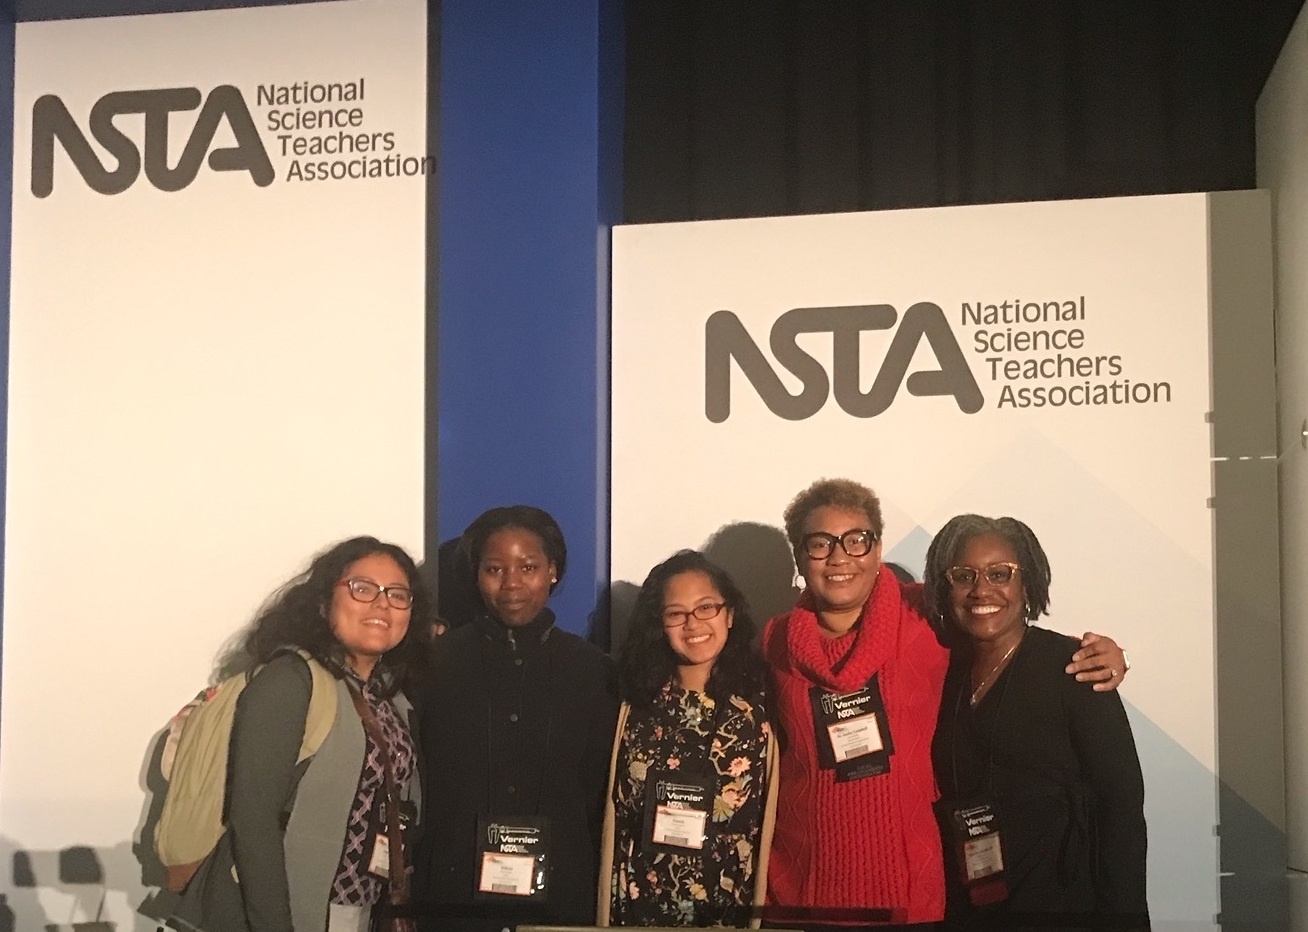 Left to right: Josephine Vallejo (biological sciences, '20); Michelle Njinguet (chemistry, '20); Pamela Tarectecan (biological sciences, '19); Anisha Campbell (Associate Director); and Damaries Blondonville (Prince George's County Public Schools, TSL Senior Project Manager, Office of Talent Development)